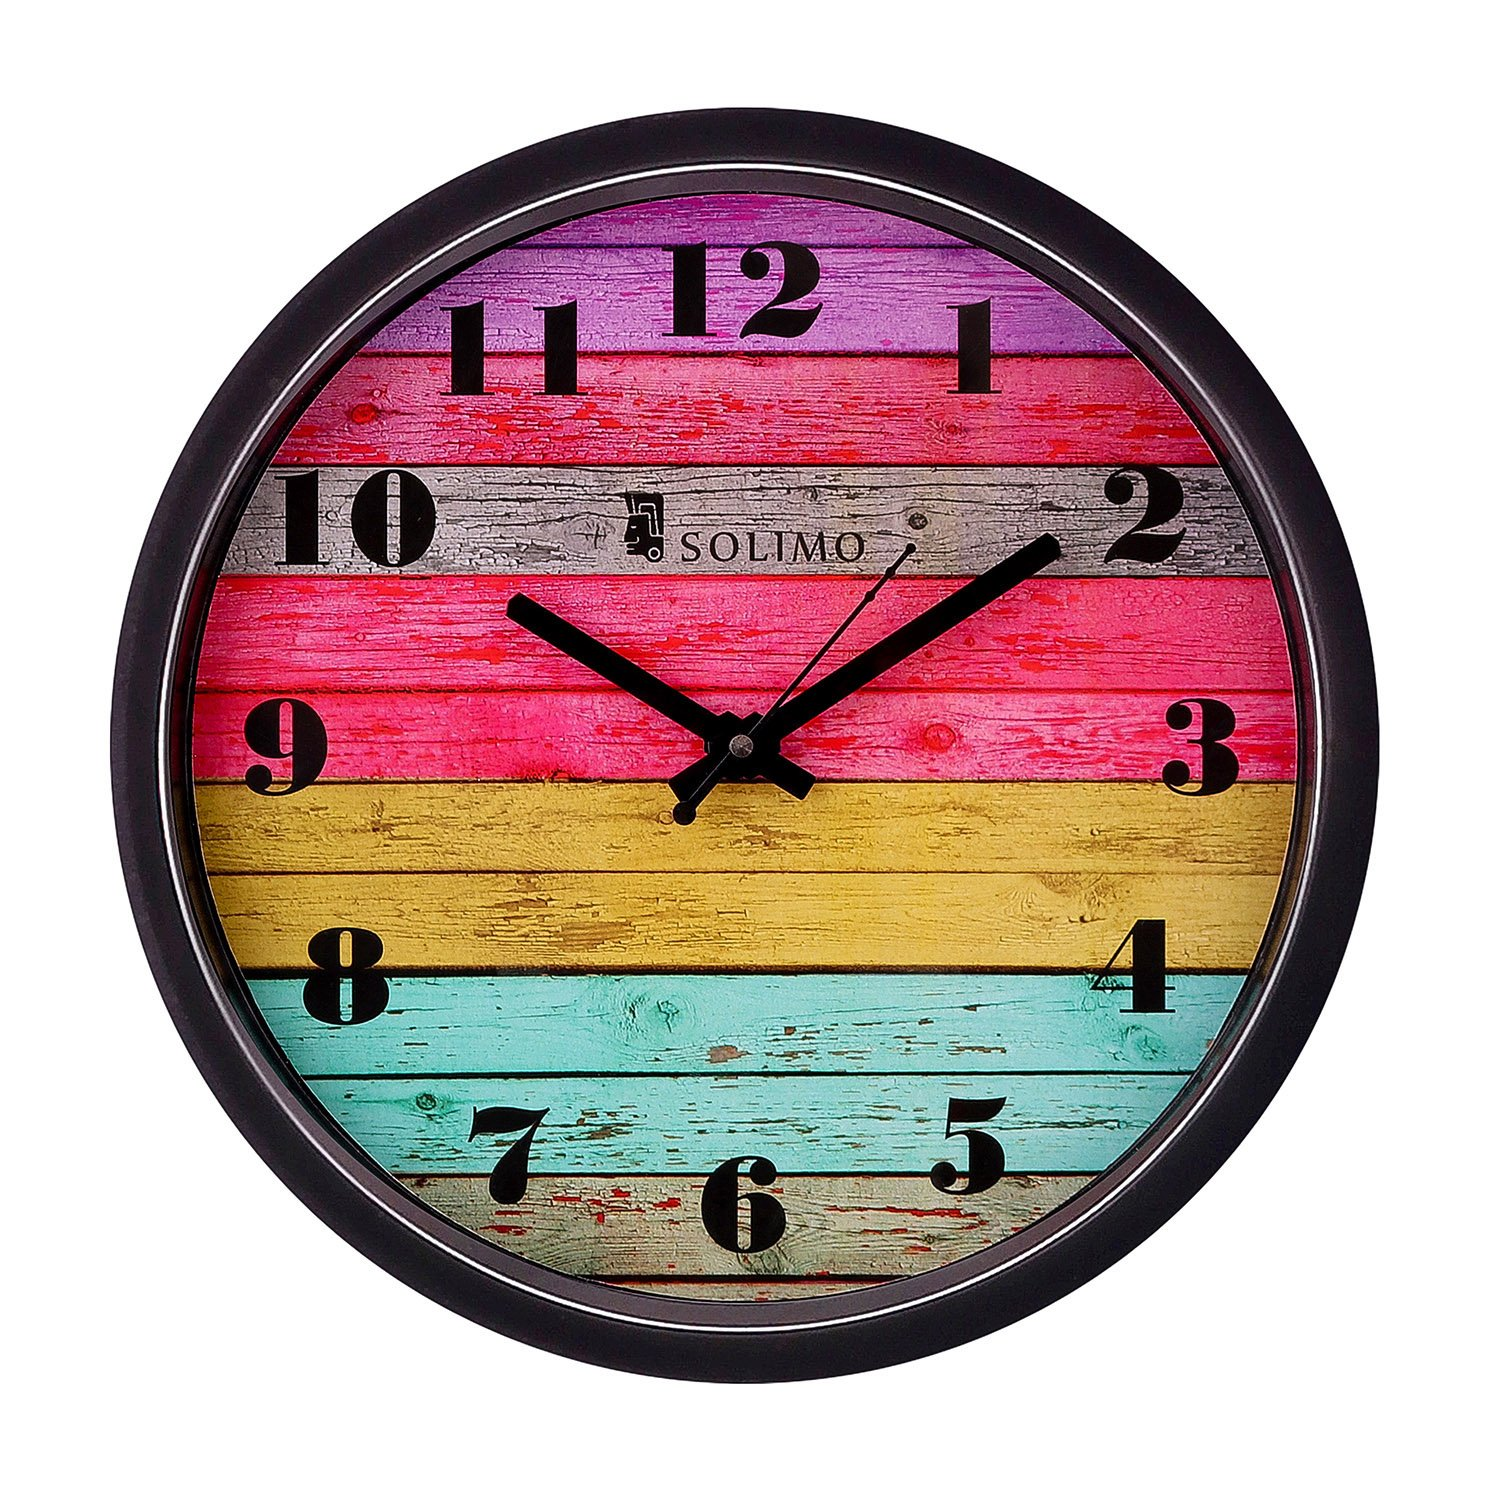 Amazon Brand - Solimo 12-inch Wall Clock